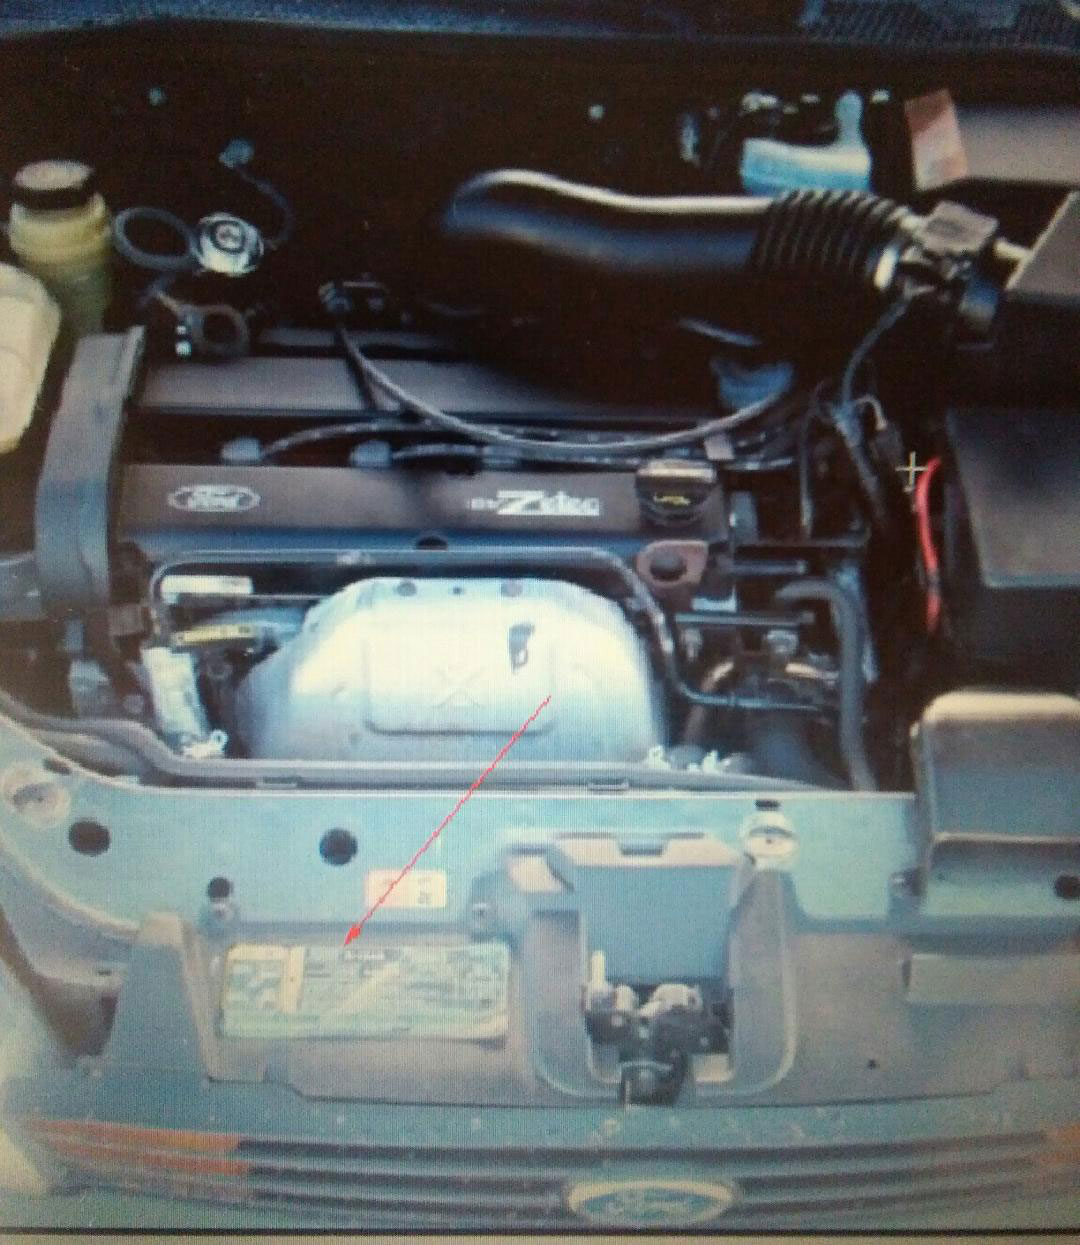 About the sticker under the hood MK1-ford-label-example.jpg